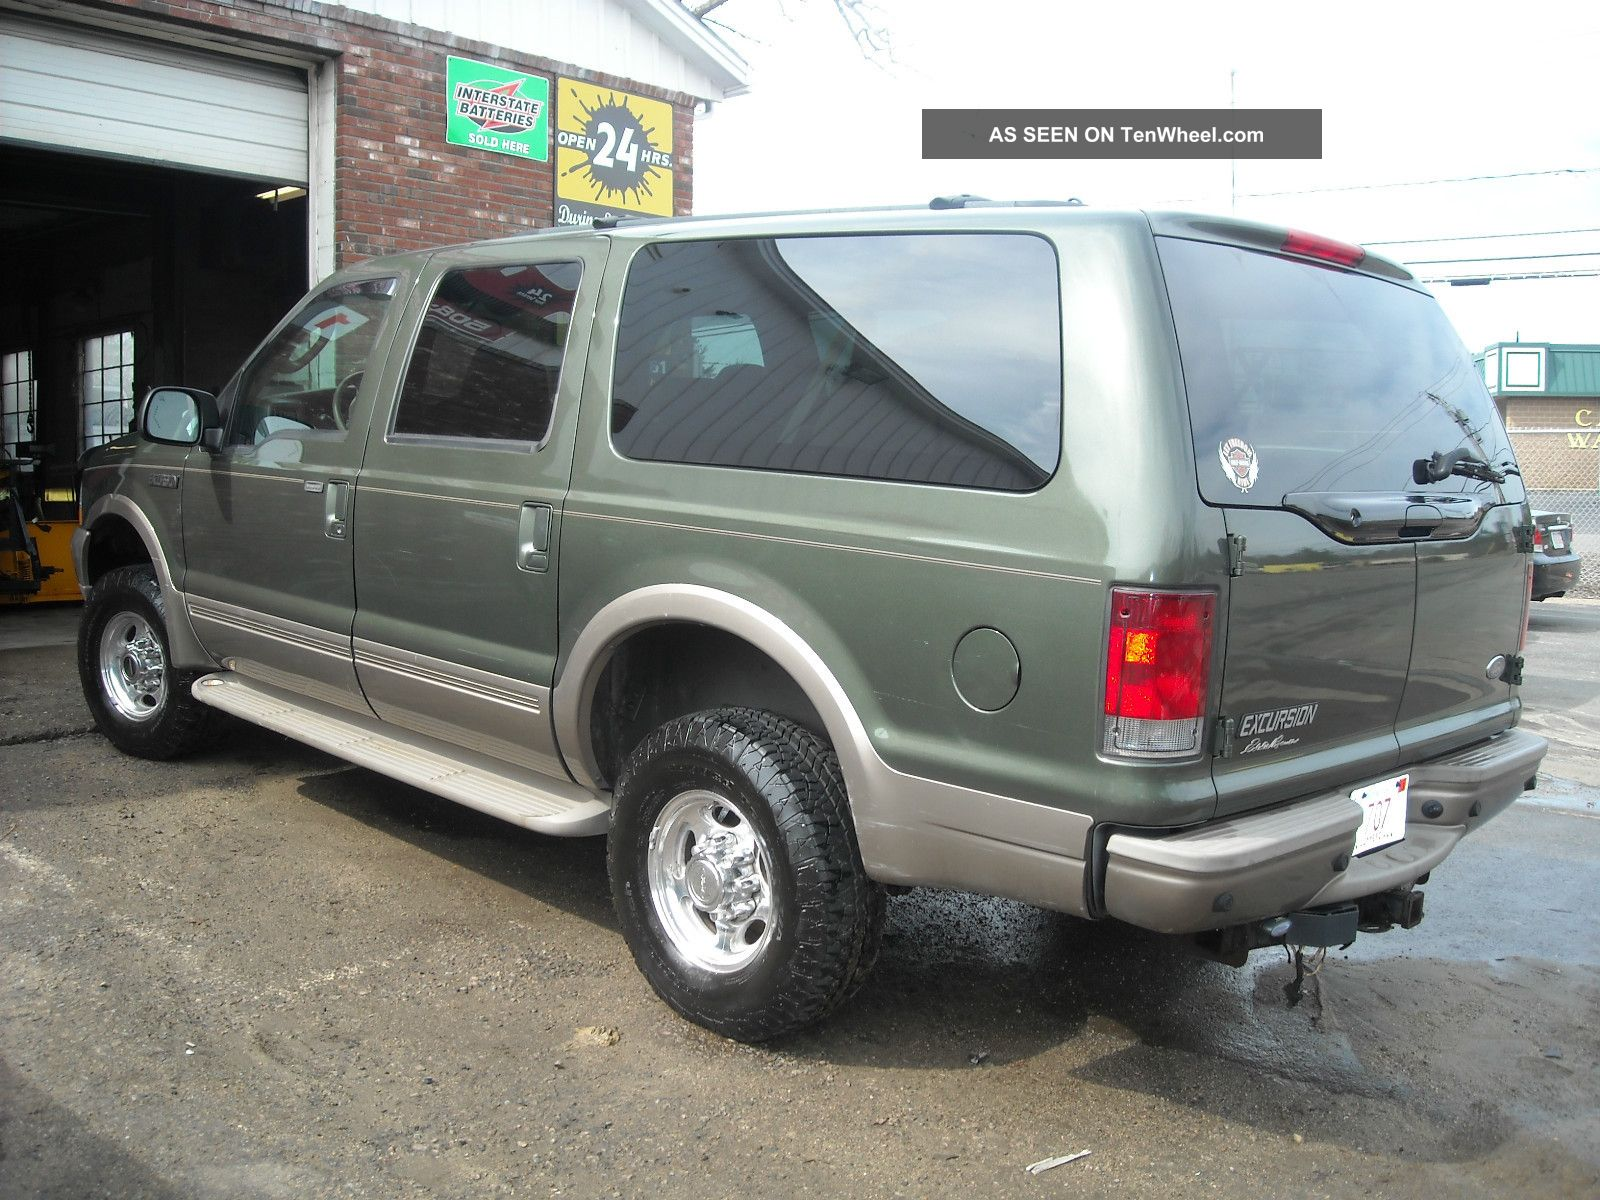 2003 ford explorer eddie bauer edition owners manual. Black Bedroom Furniture Sets. Home Design Ideas